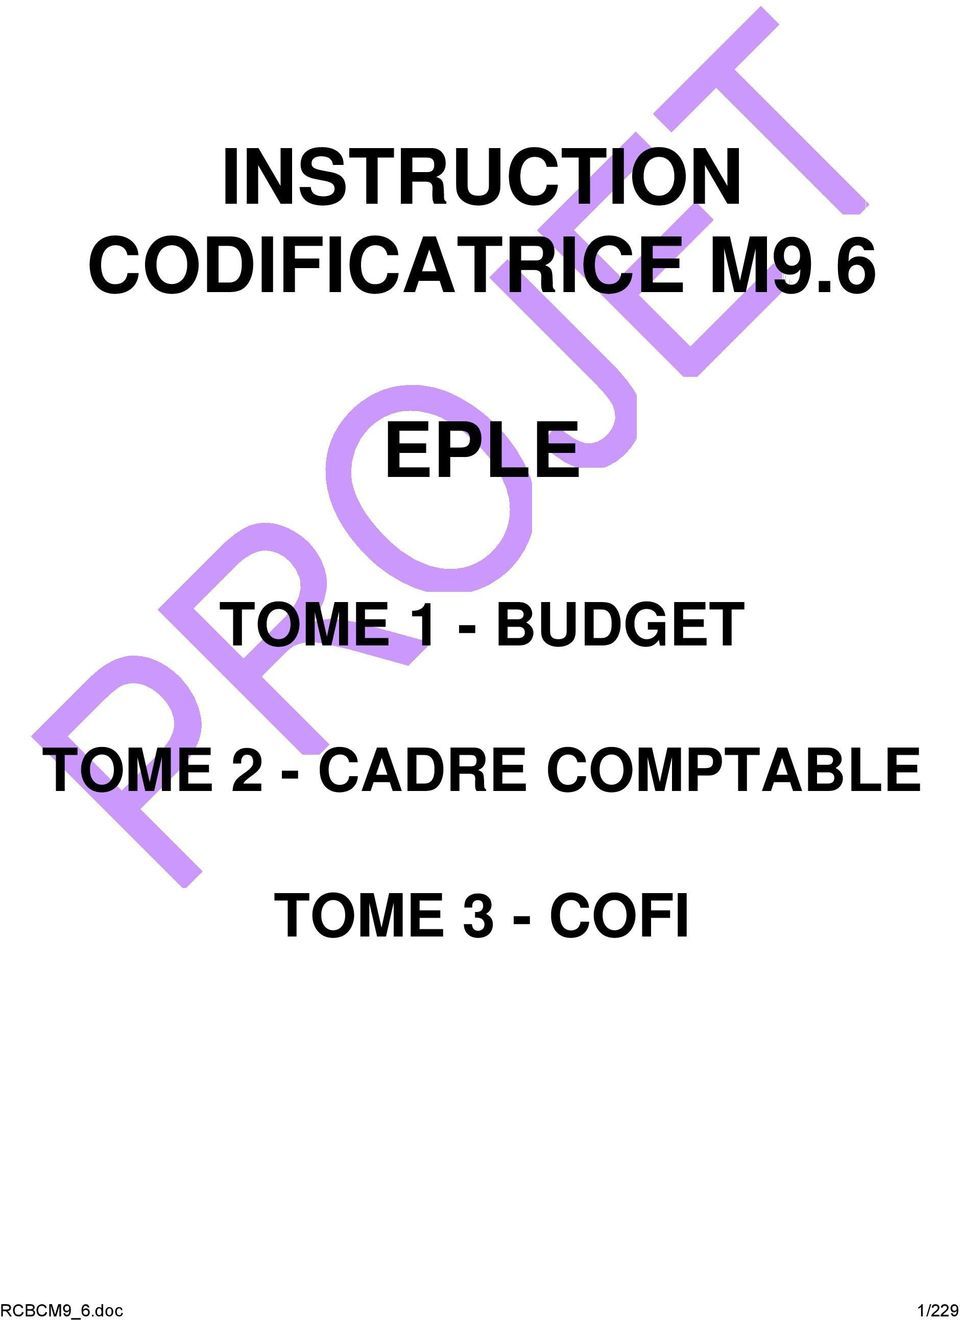 TOME 2 - CADRE COMPTABLE